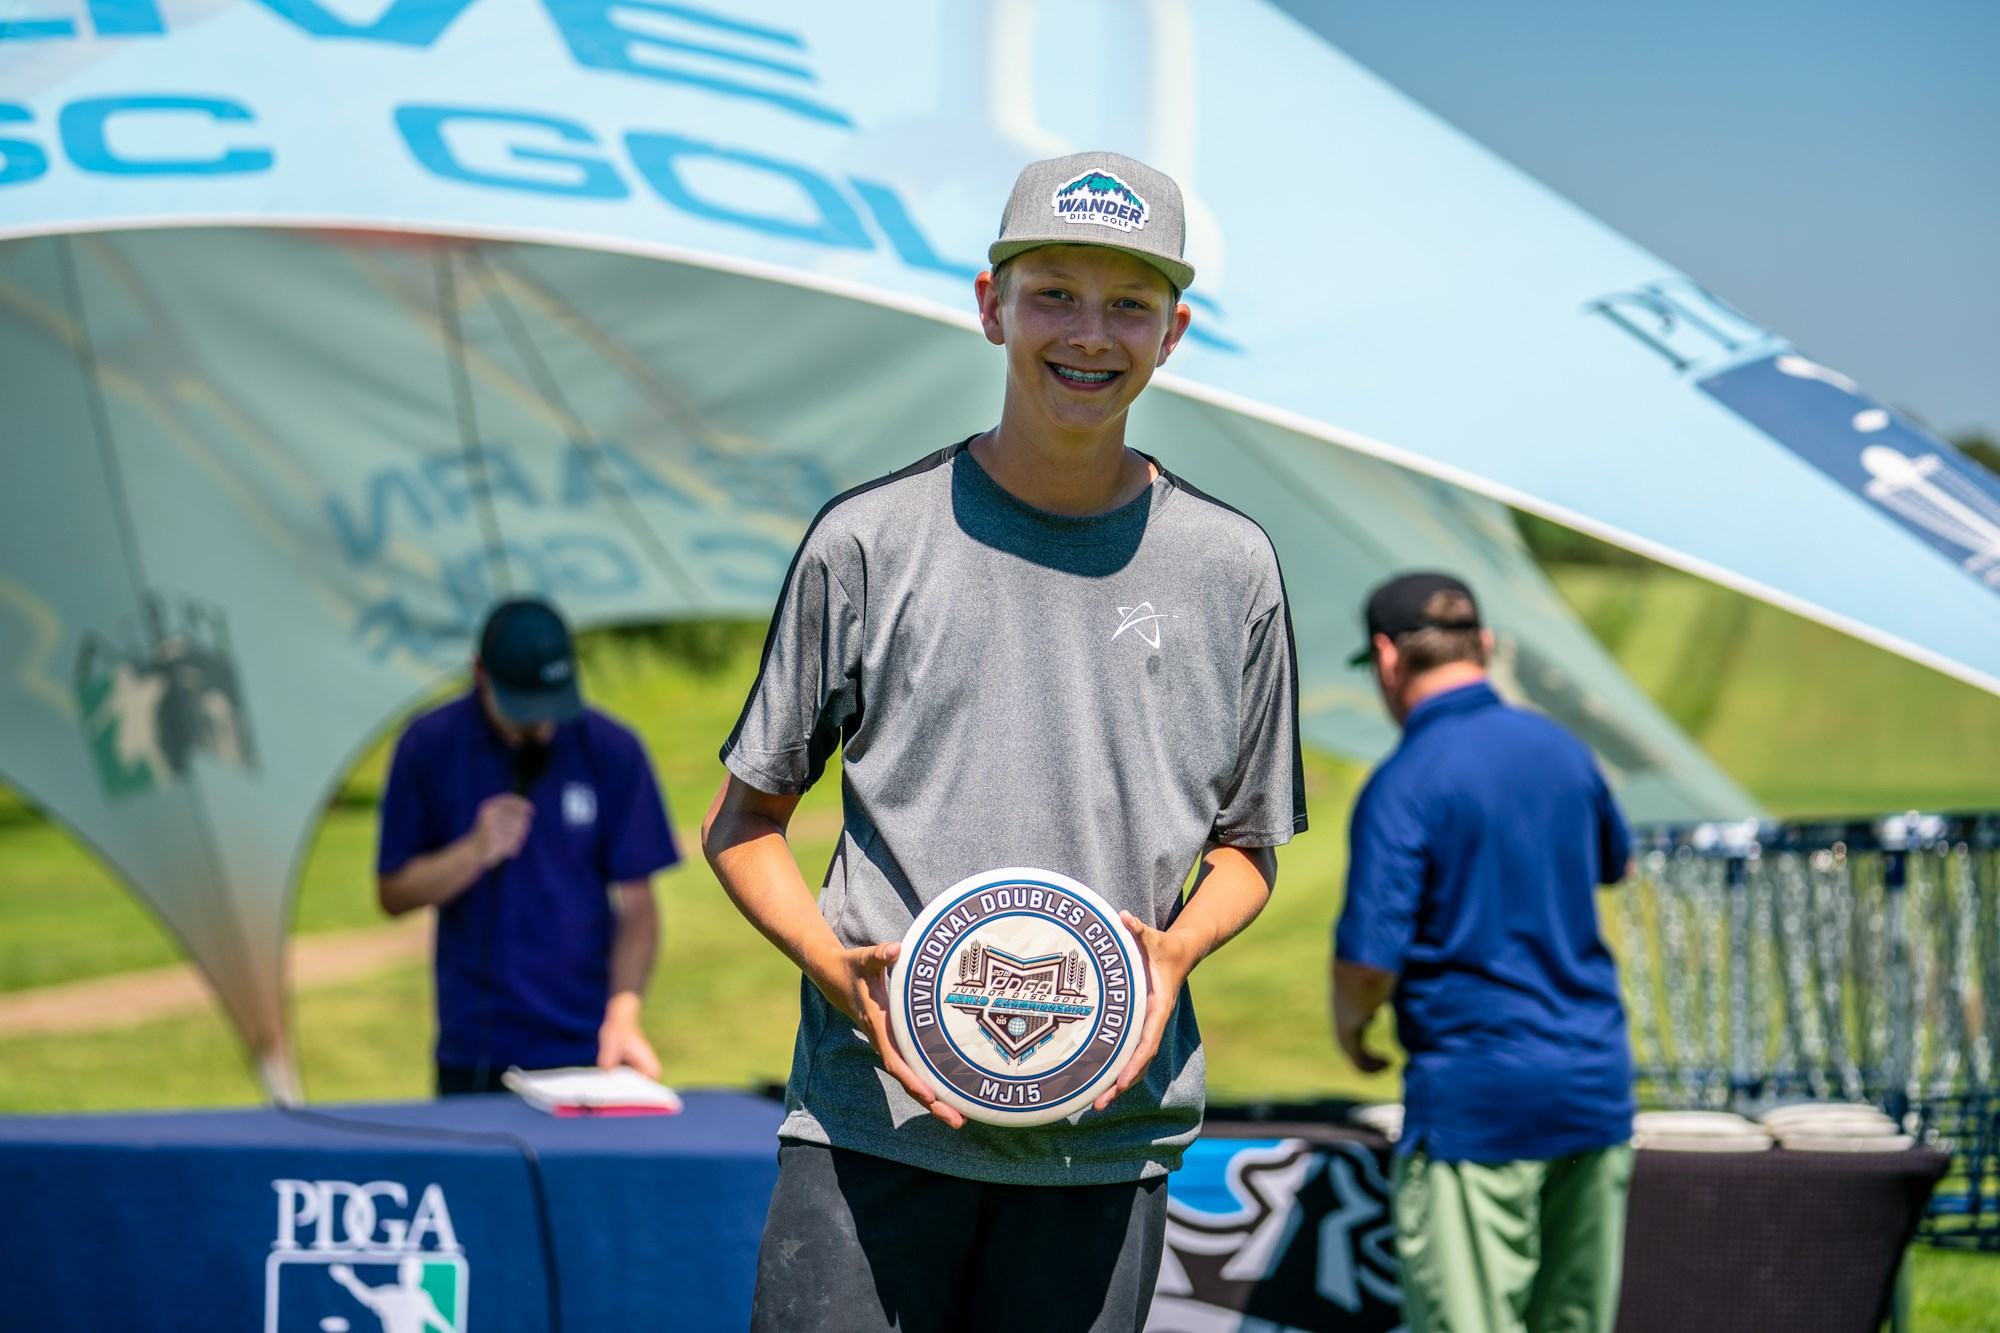 Gannon Buhr accepting one of his trophies at the 2019 PDGA Junior World Championships.